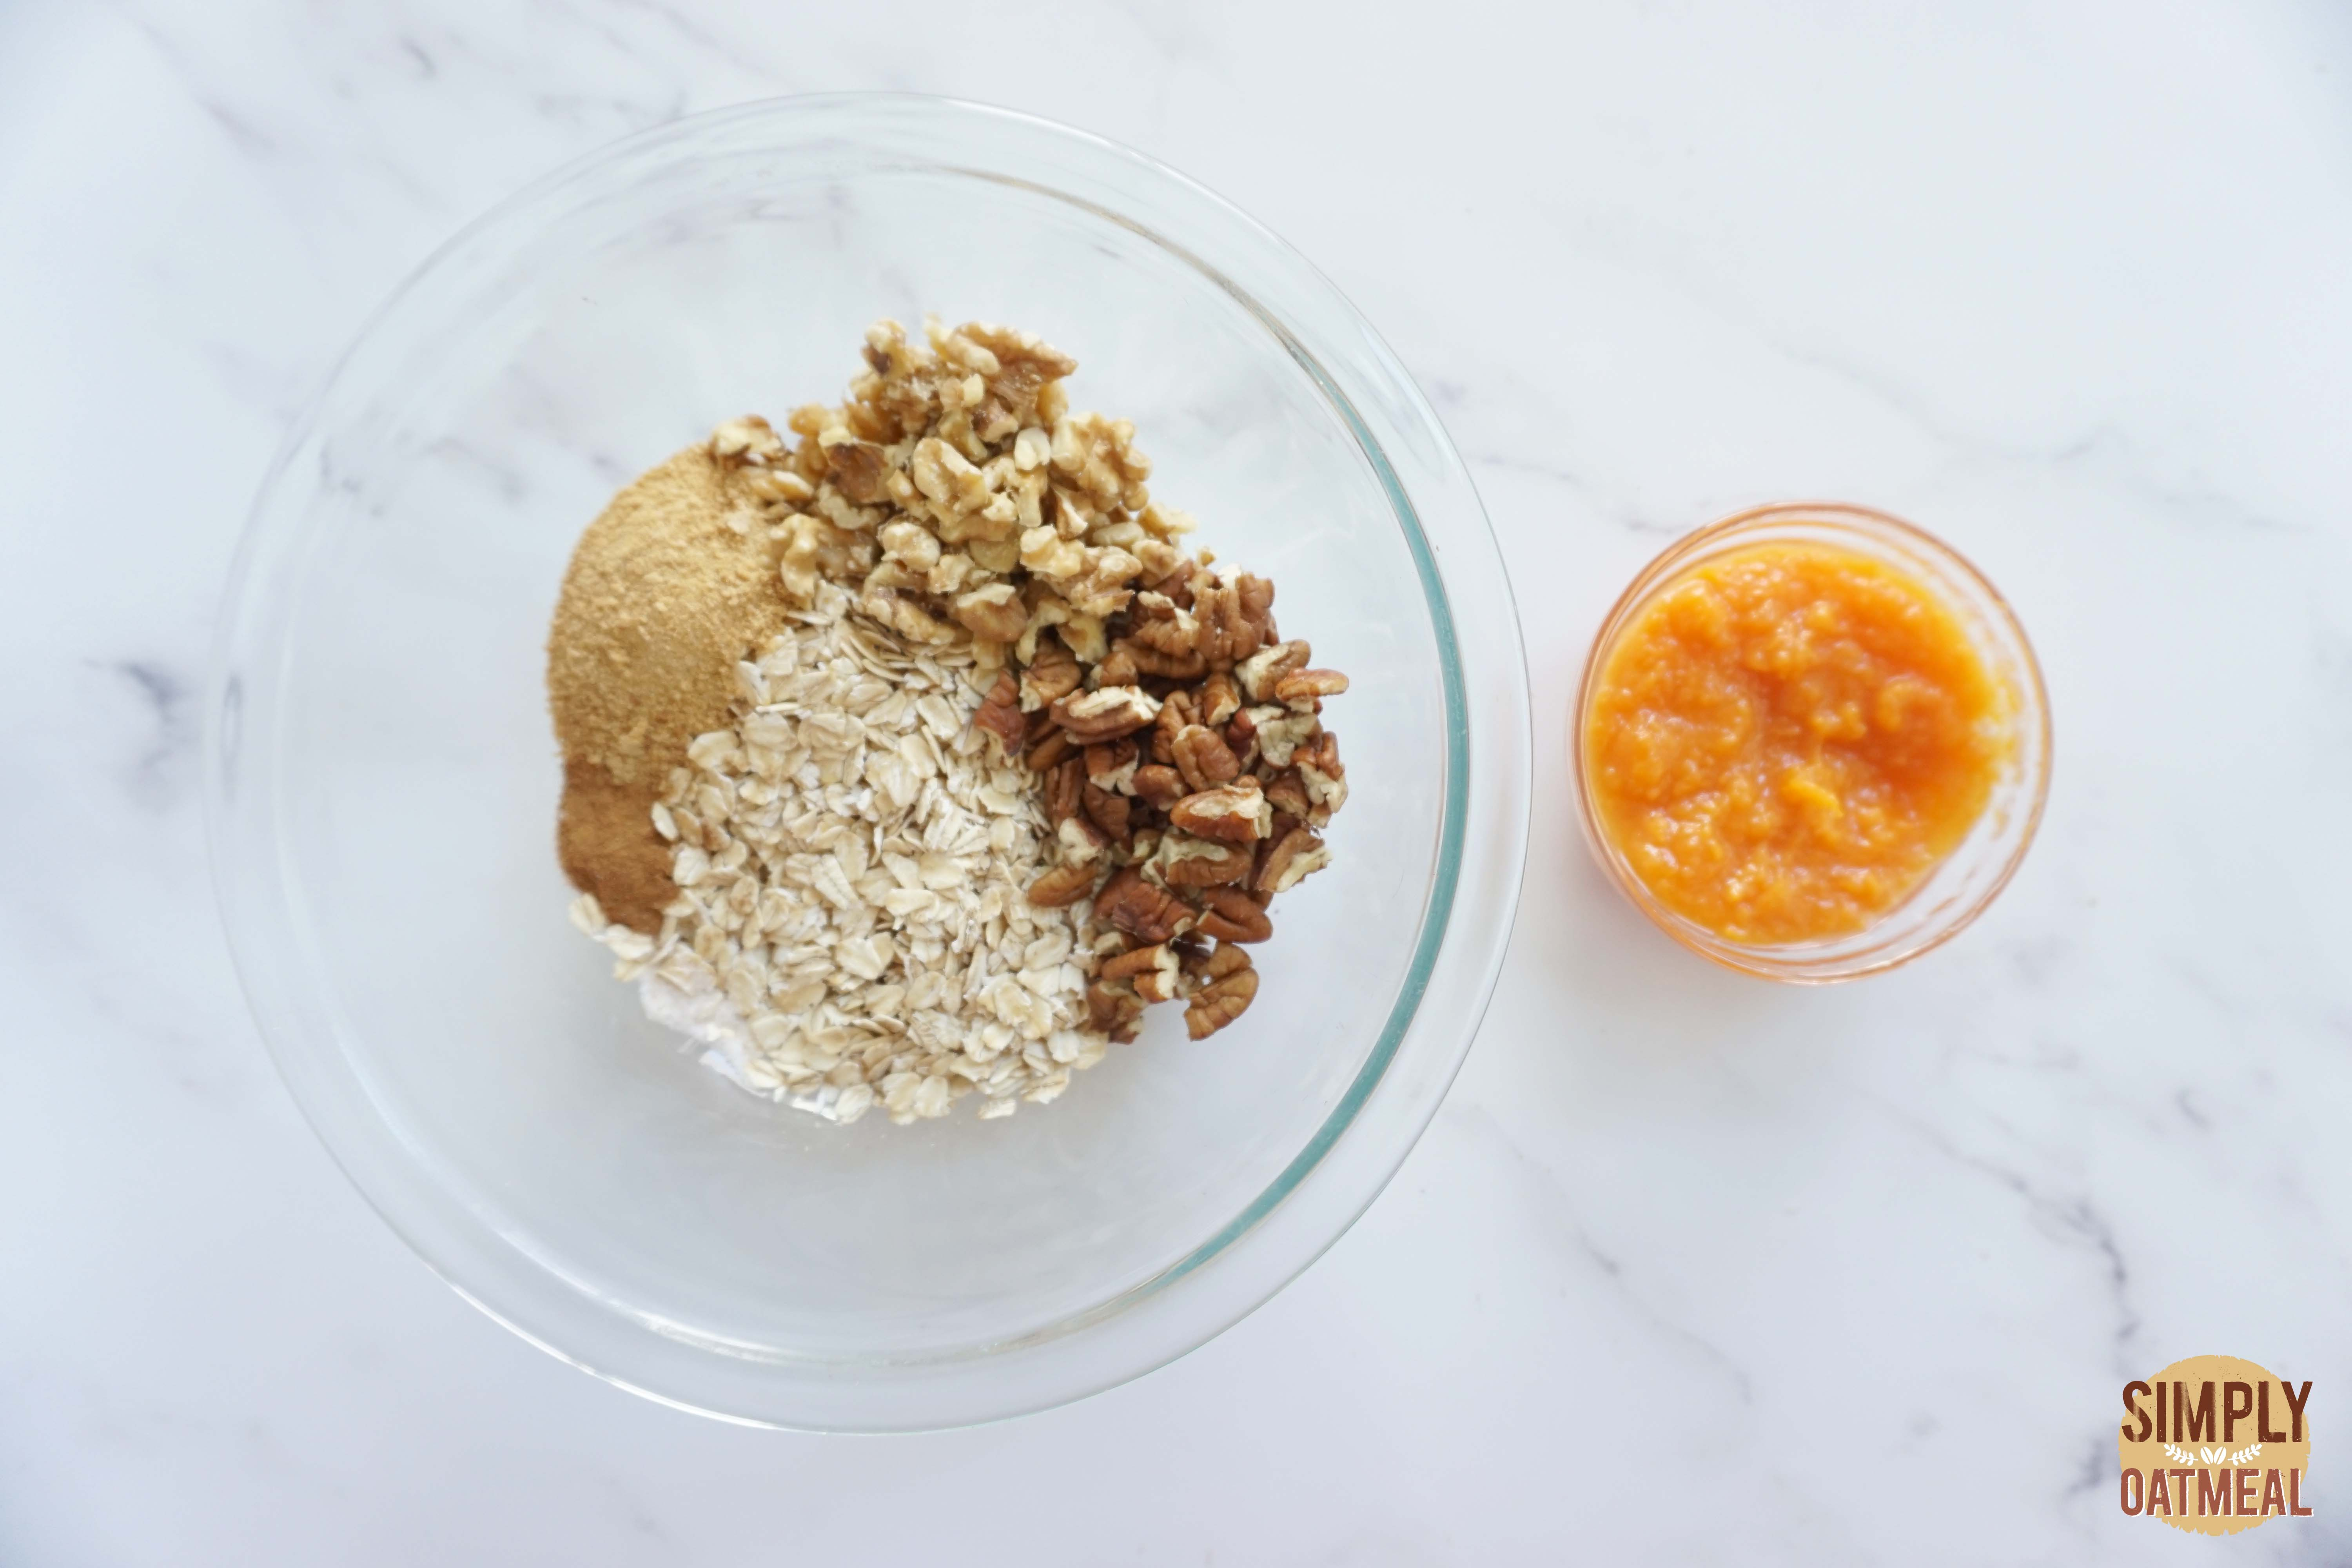 Wet and dry ingredients to make sweet potato maple granola